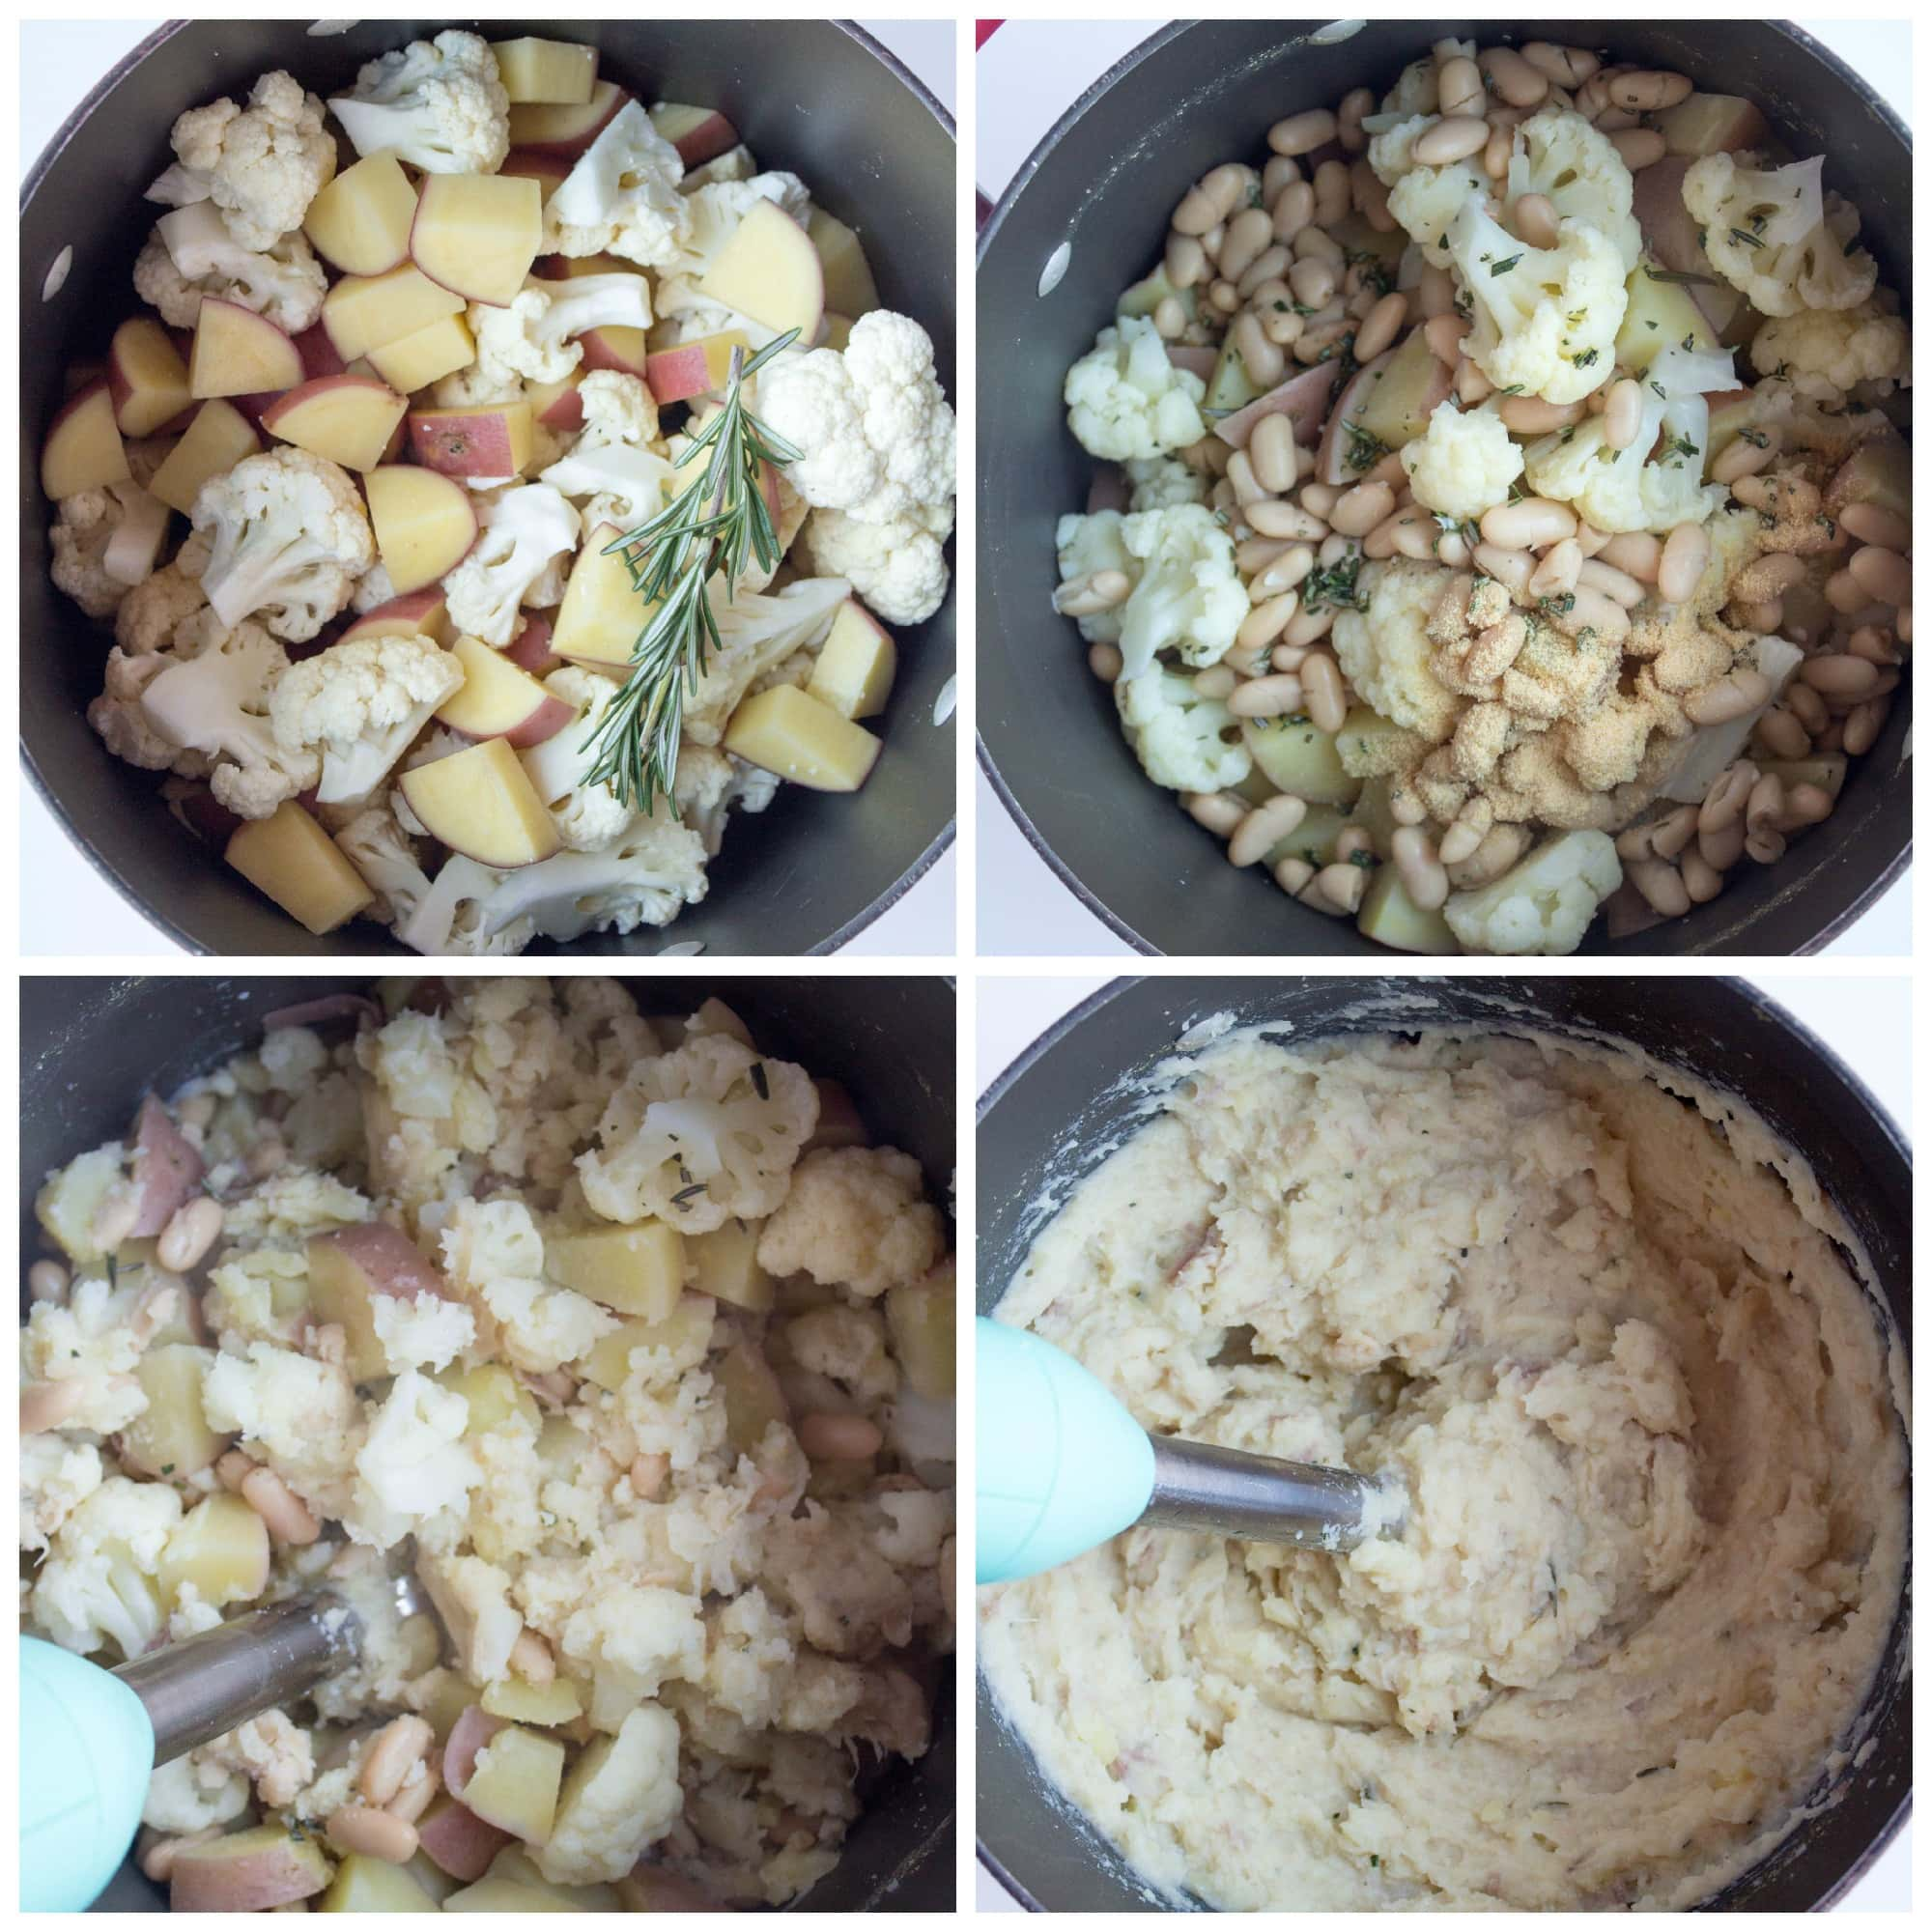 10 Healthy Ways To Cook With Potatoes: Healthy Mashed Potatoes Recipe